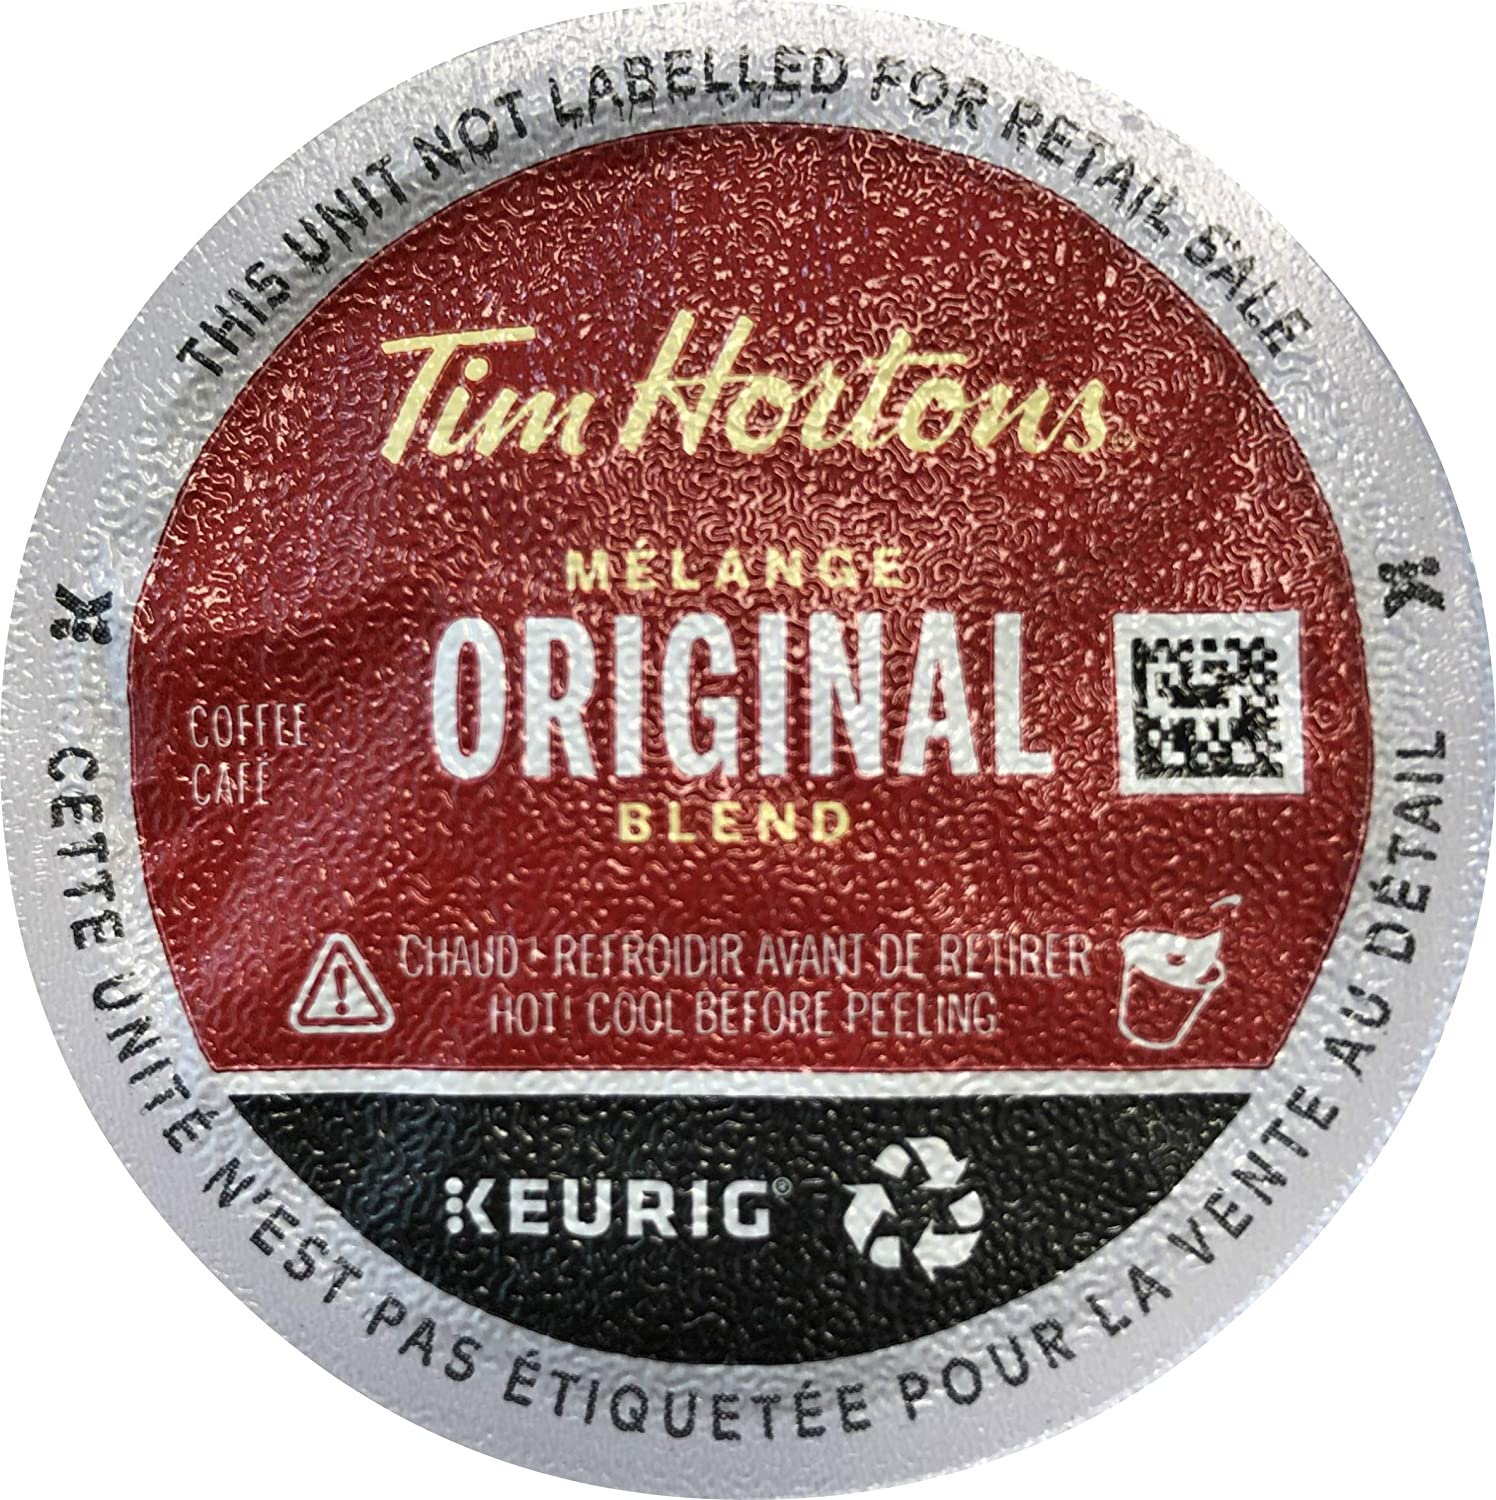 Tim Hortons Original Blend Single Serve Coffee K-Cups 72 Count (Packaging May Vary)